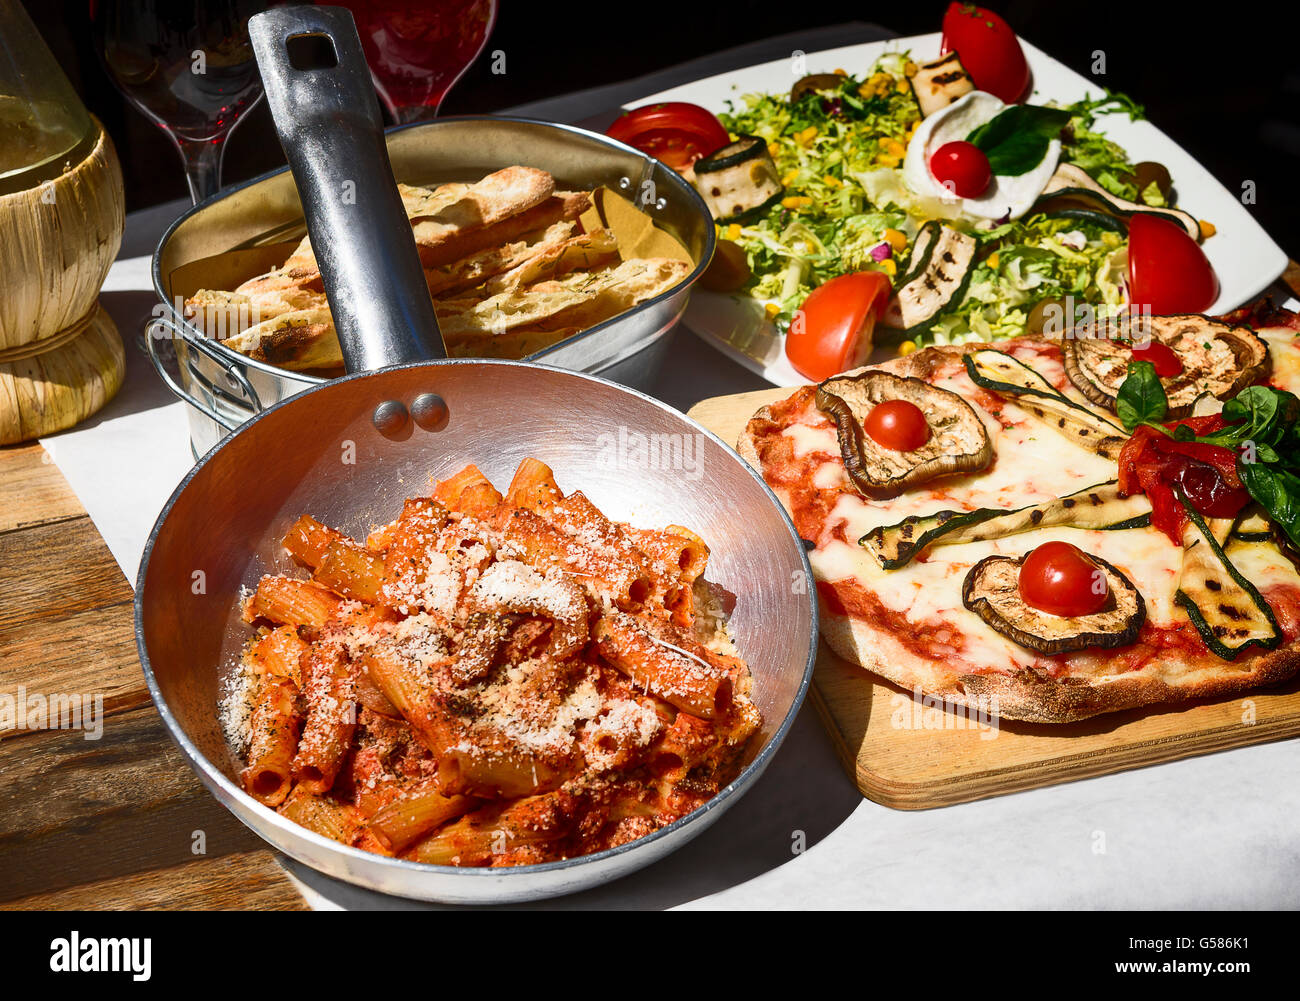 Pasta restaurant in Rome city Italy south Europe. Egg noodles, homemade food.Tasty and authentic Italian food. - Stock Image